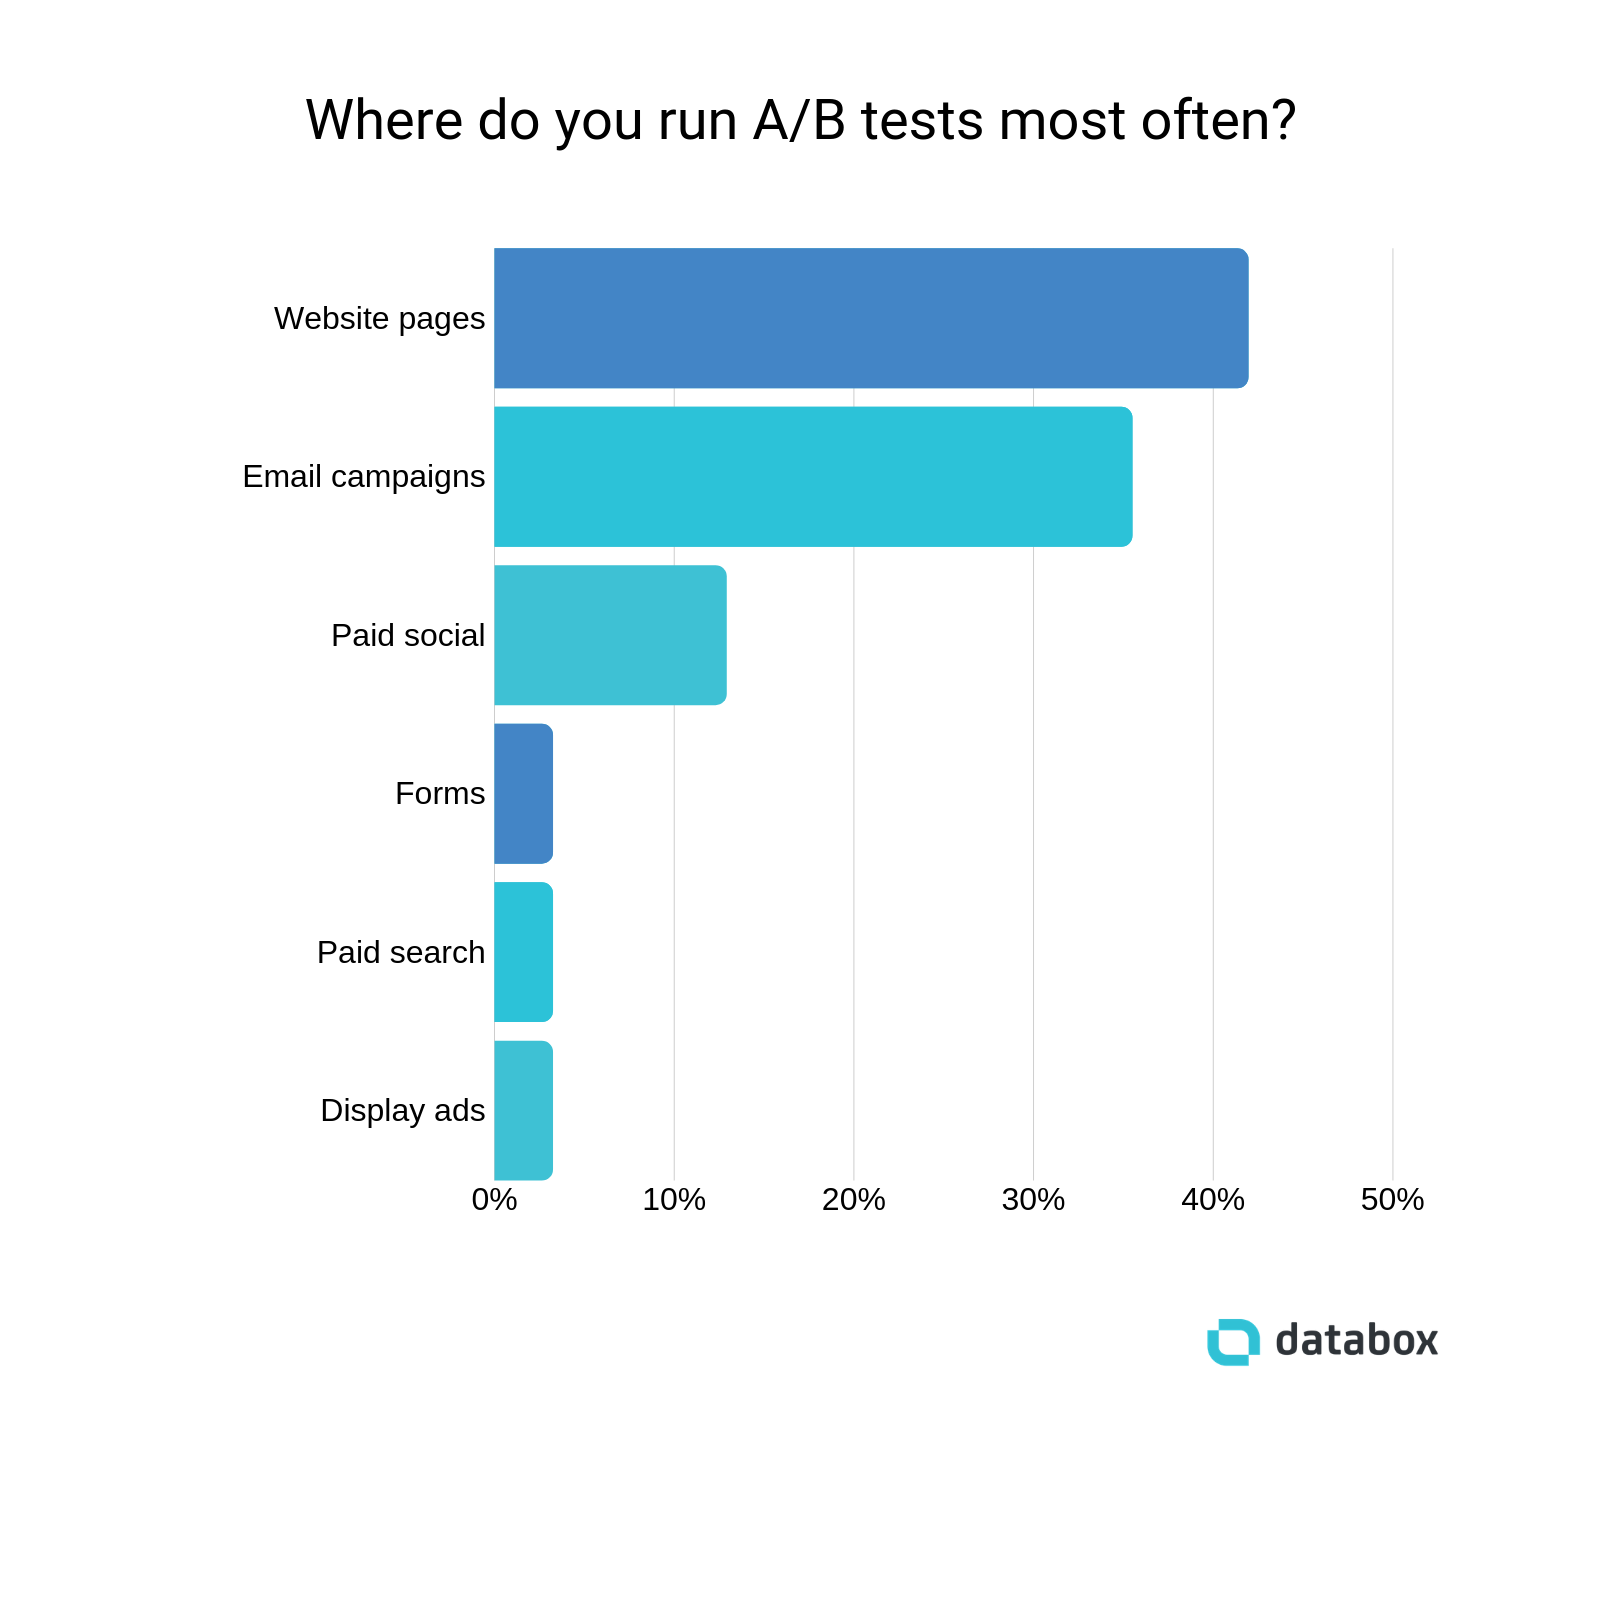 most-common-ab-test-location